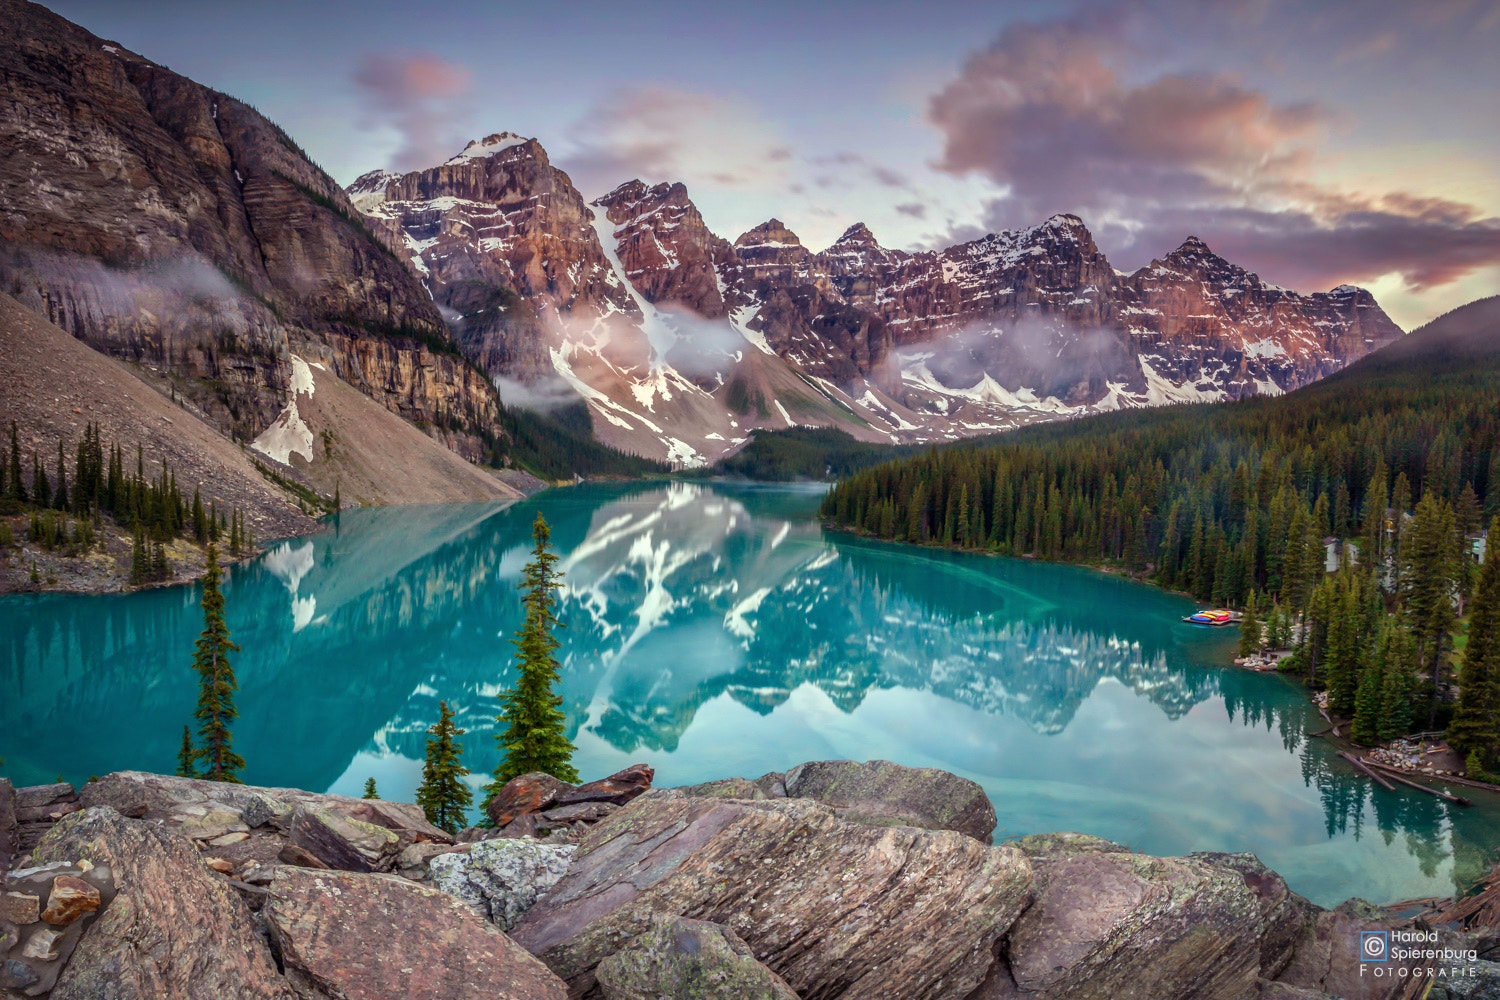 Photograph Moraine Lake by Harold Spierenburg on 500px